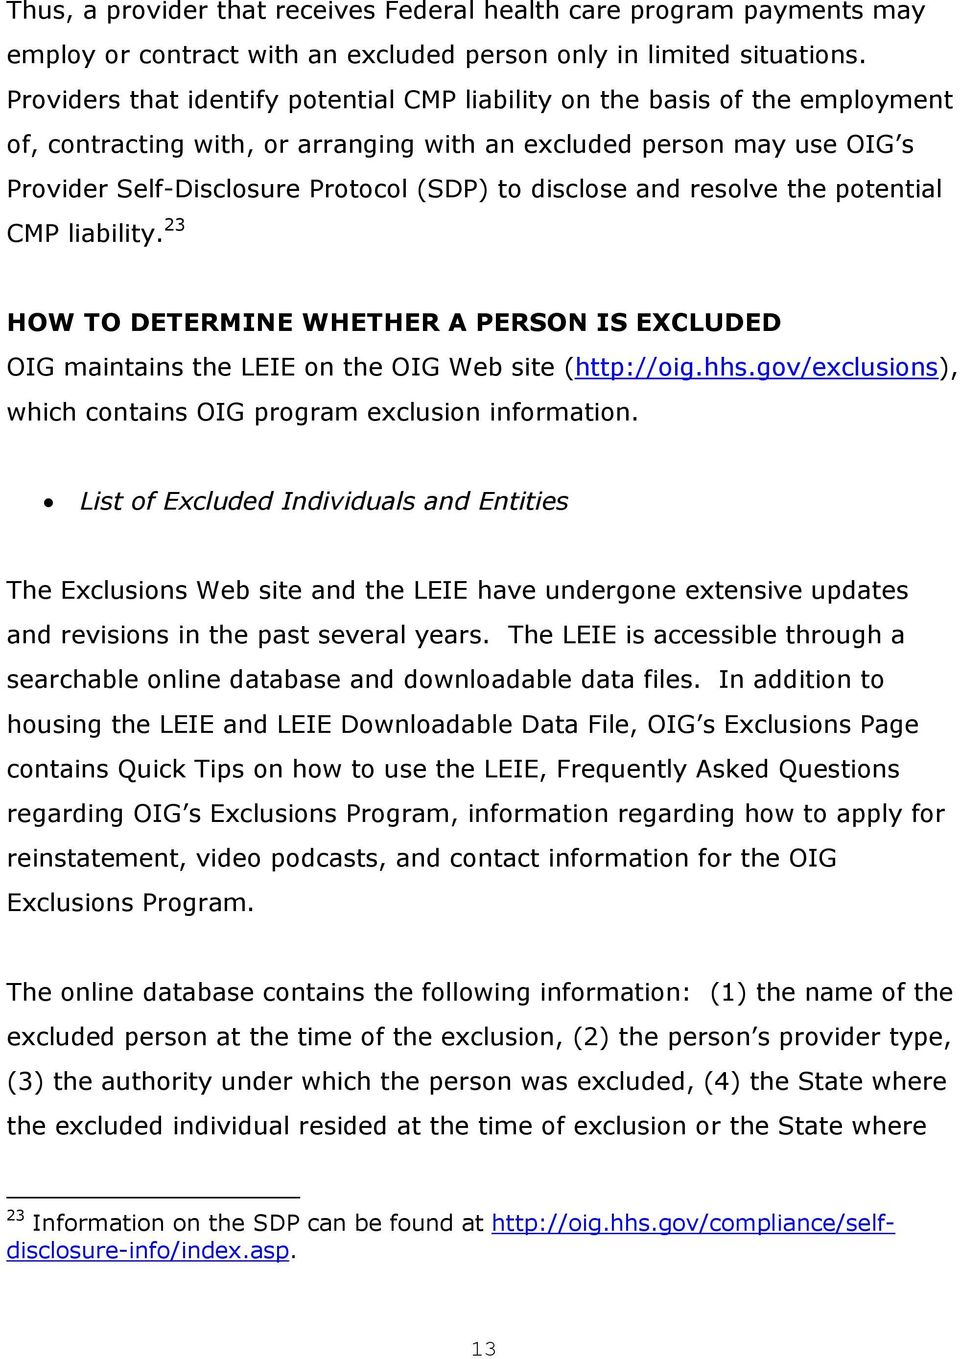 disclose and resolve the potential CMP liability. 23 HOW TO DETERMINE WHETHER A PERSON IS EXCLUDED OIG maintains the LEIE on the OIG Web site (http://oig.hhs.